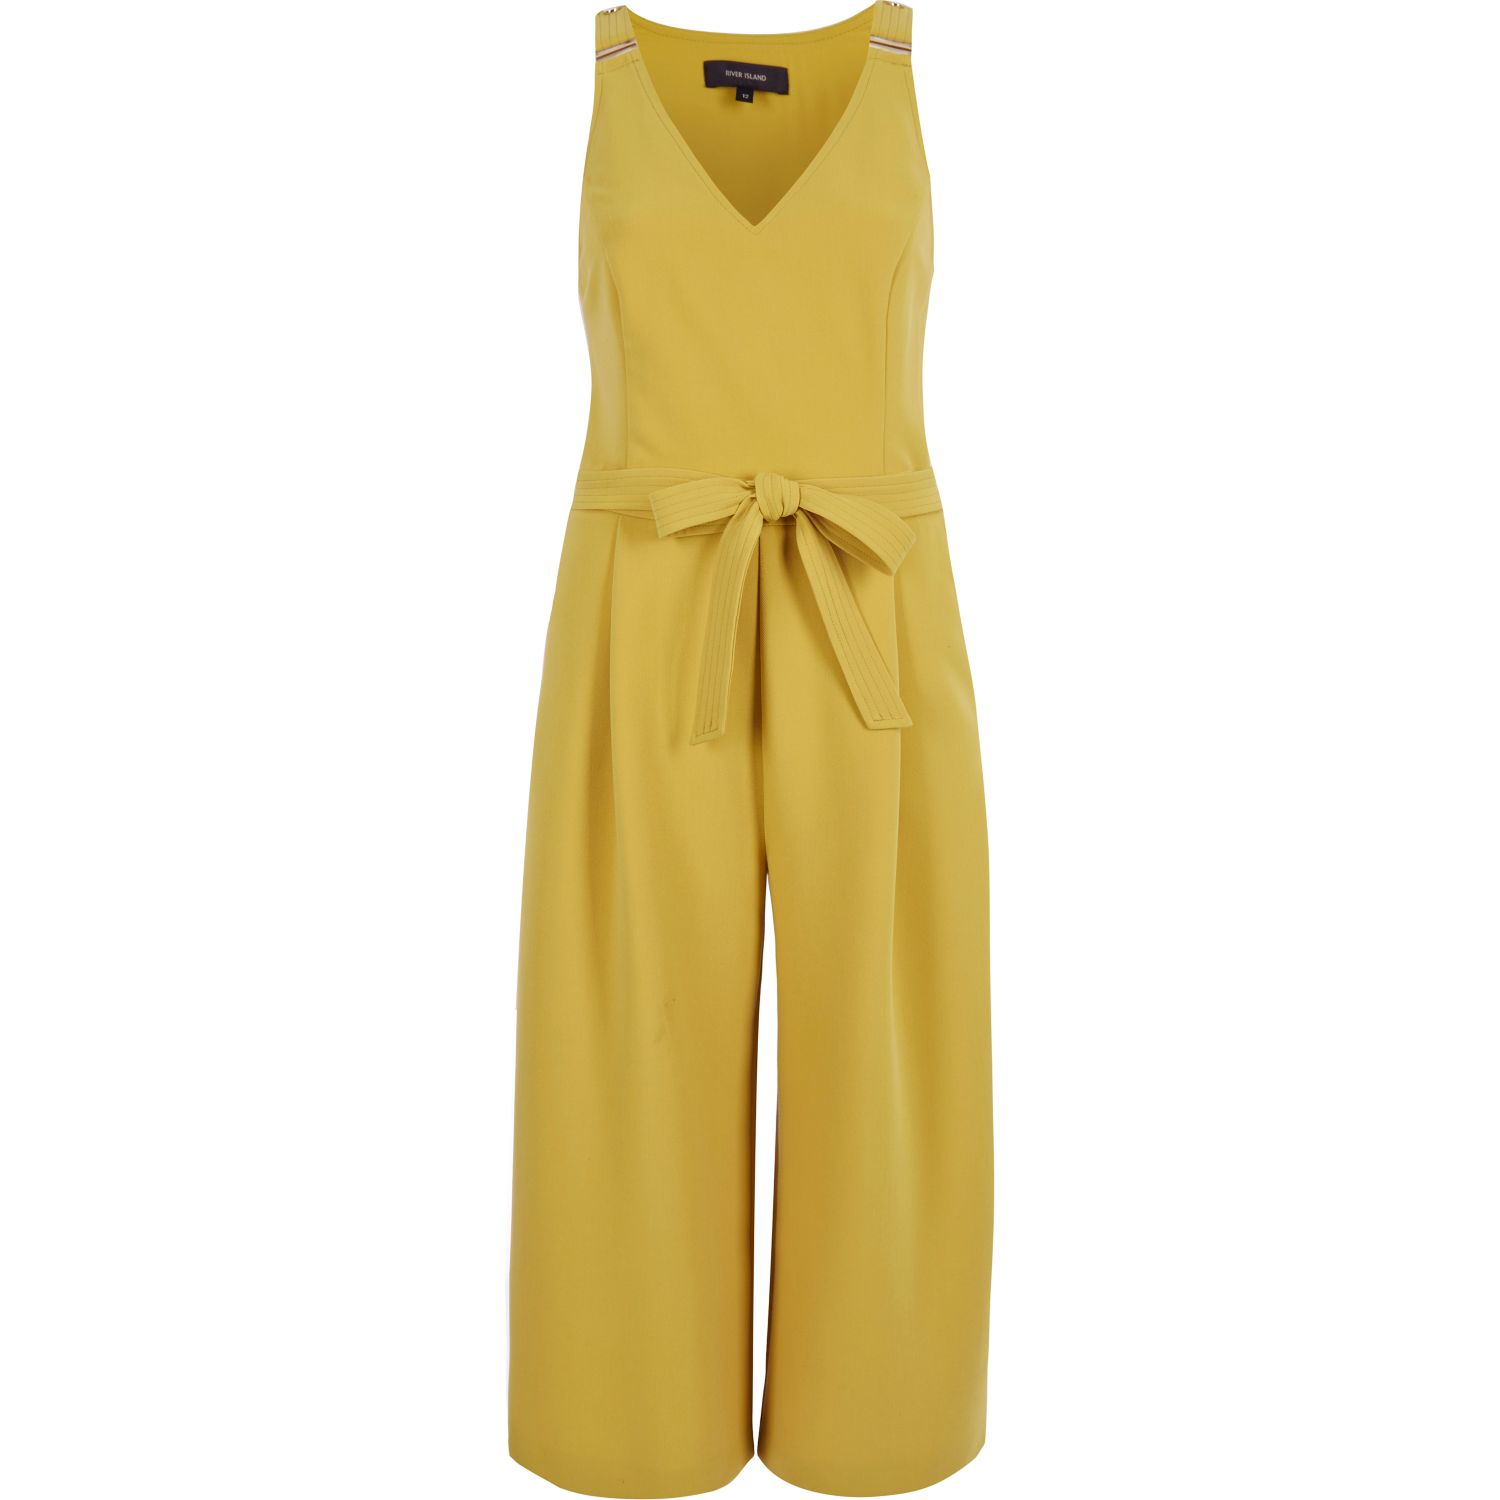 8fb6deb0670 Lyst - River Island Yellow Culotte Jumpsuit in Yellow